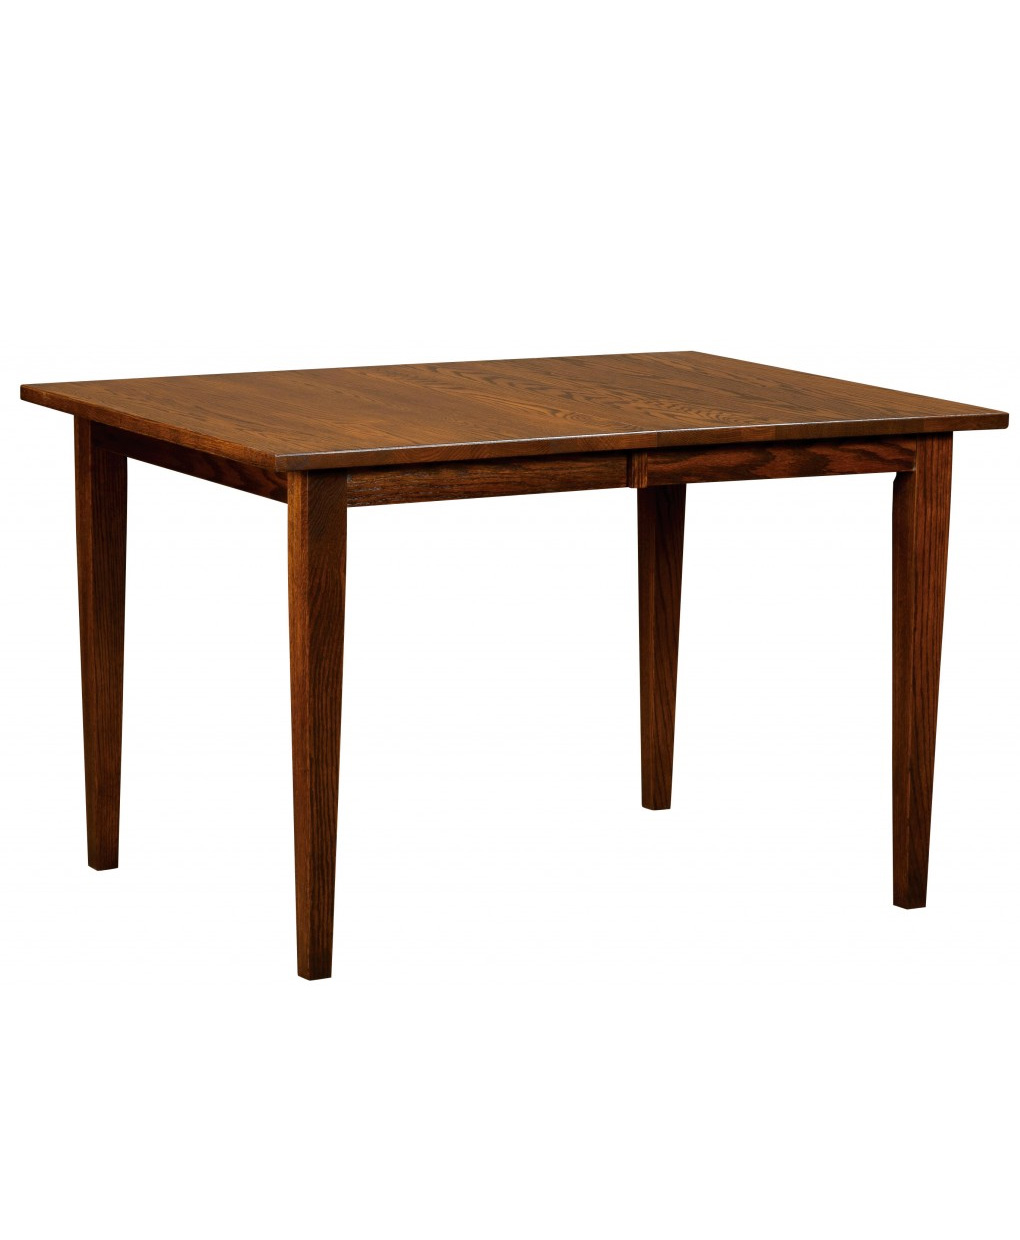 Dover leg table amish direct furniture for Single leg dining table